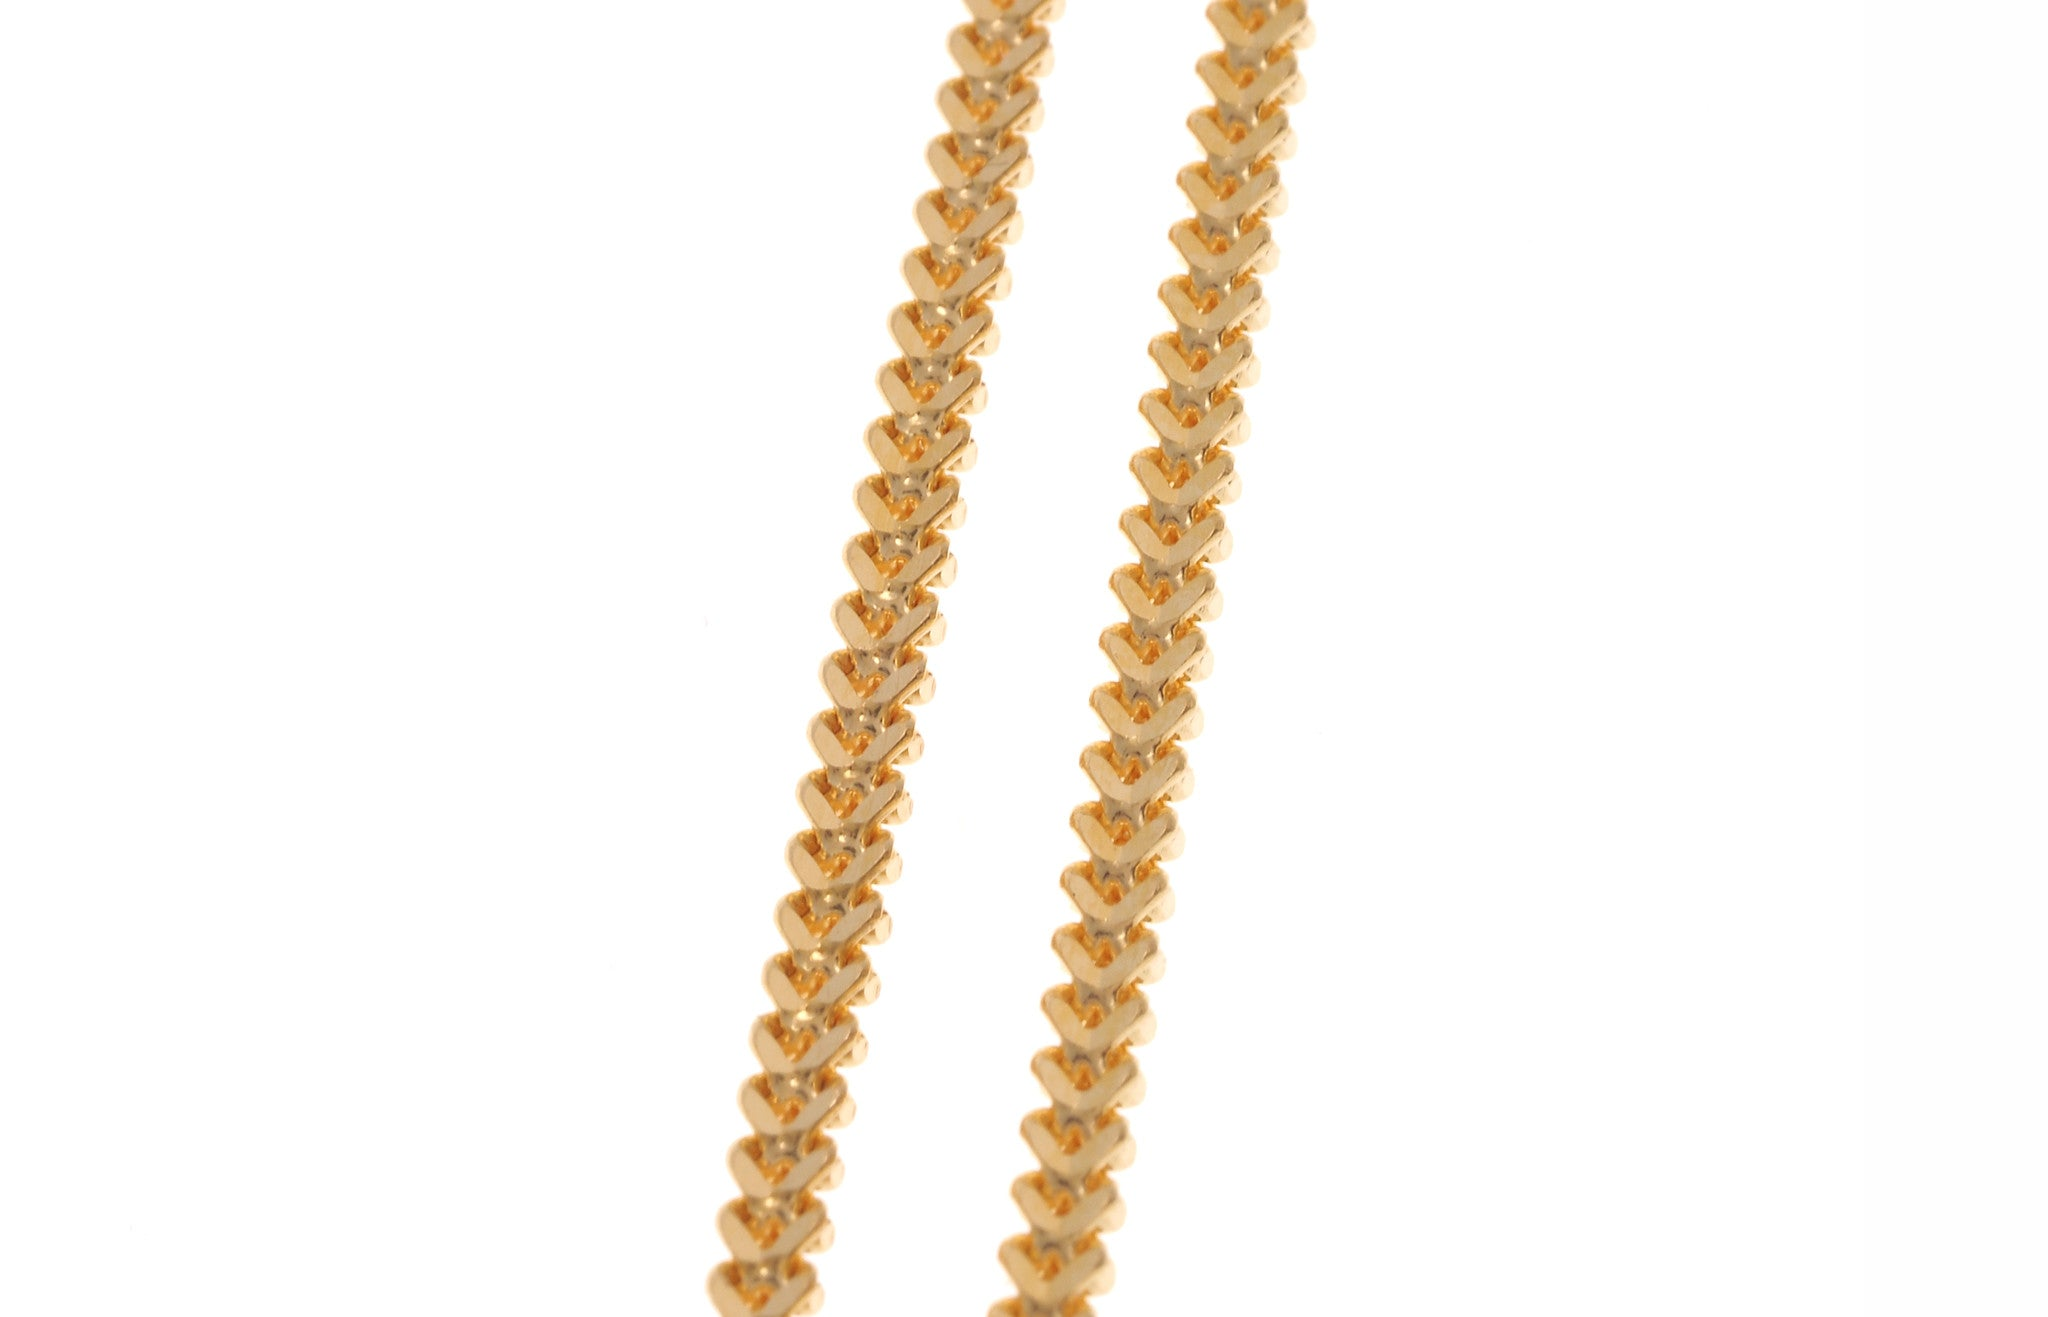 22ct Gold Unisex Foxtail Chain with a lobster clasp (10.7g) C-3796